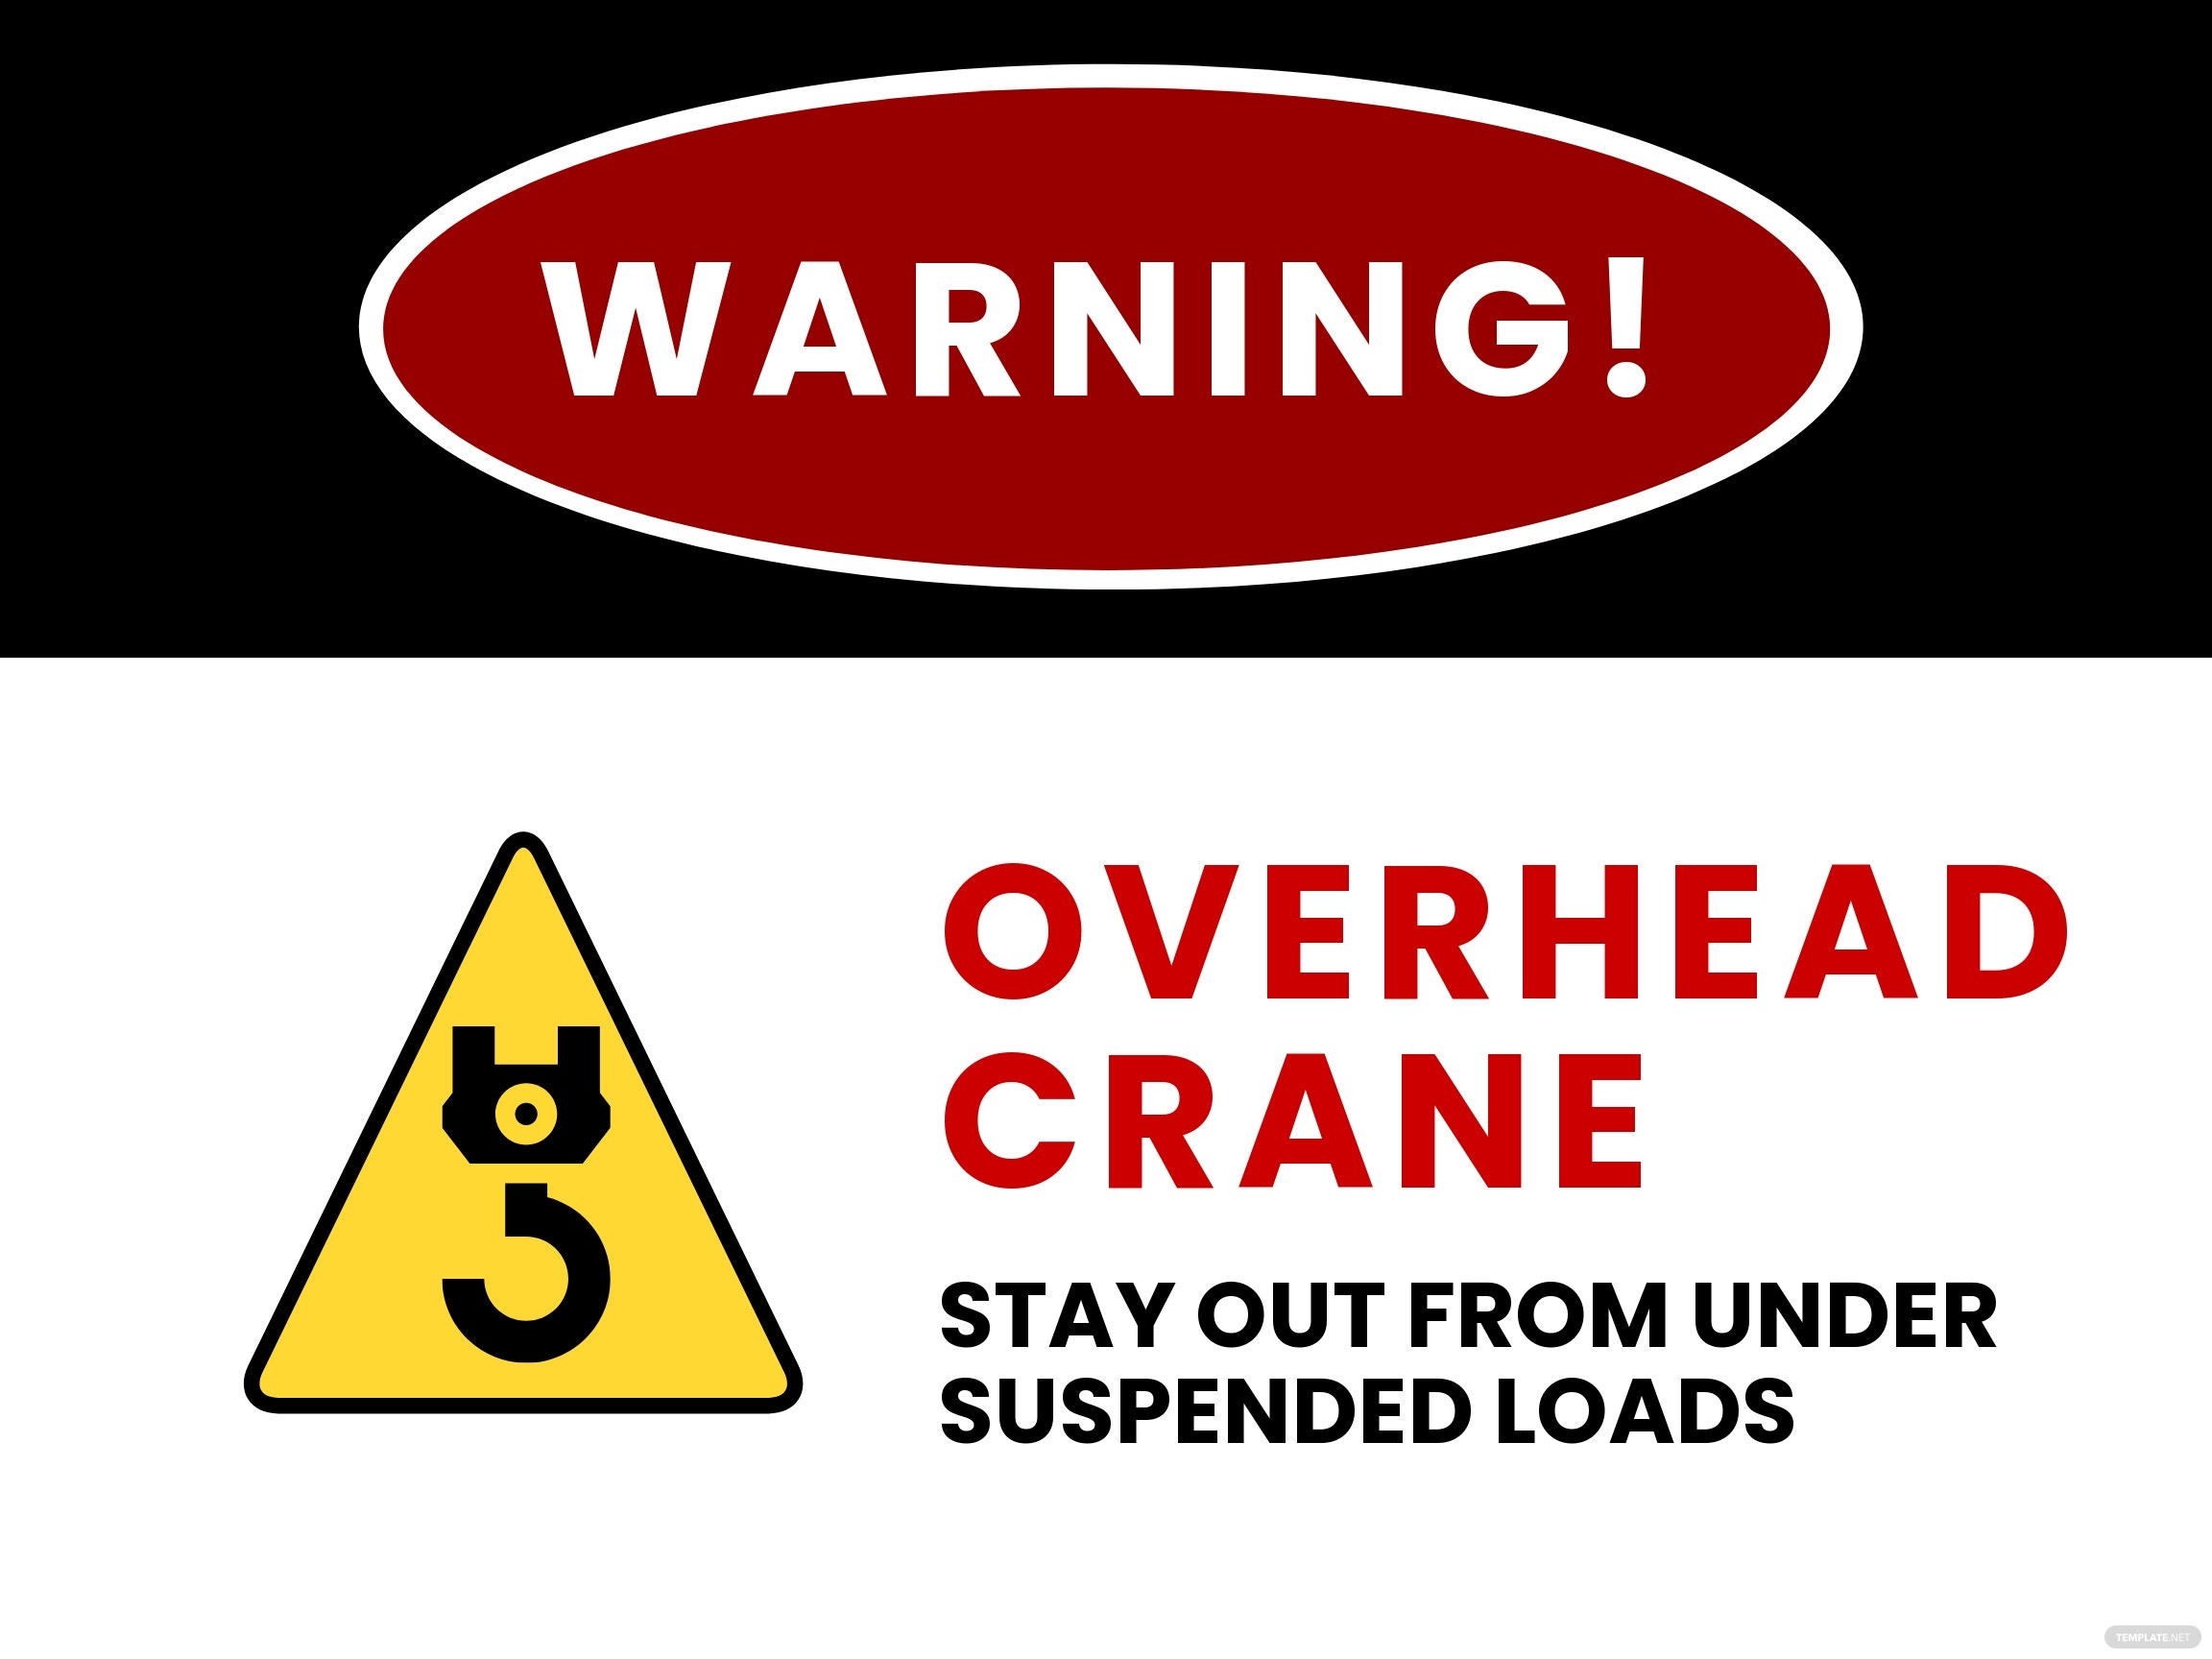 Danger - Crane Overhead Sign Template